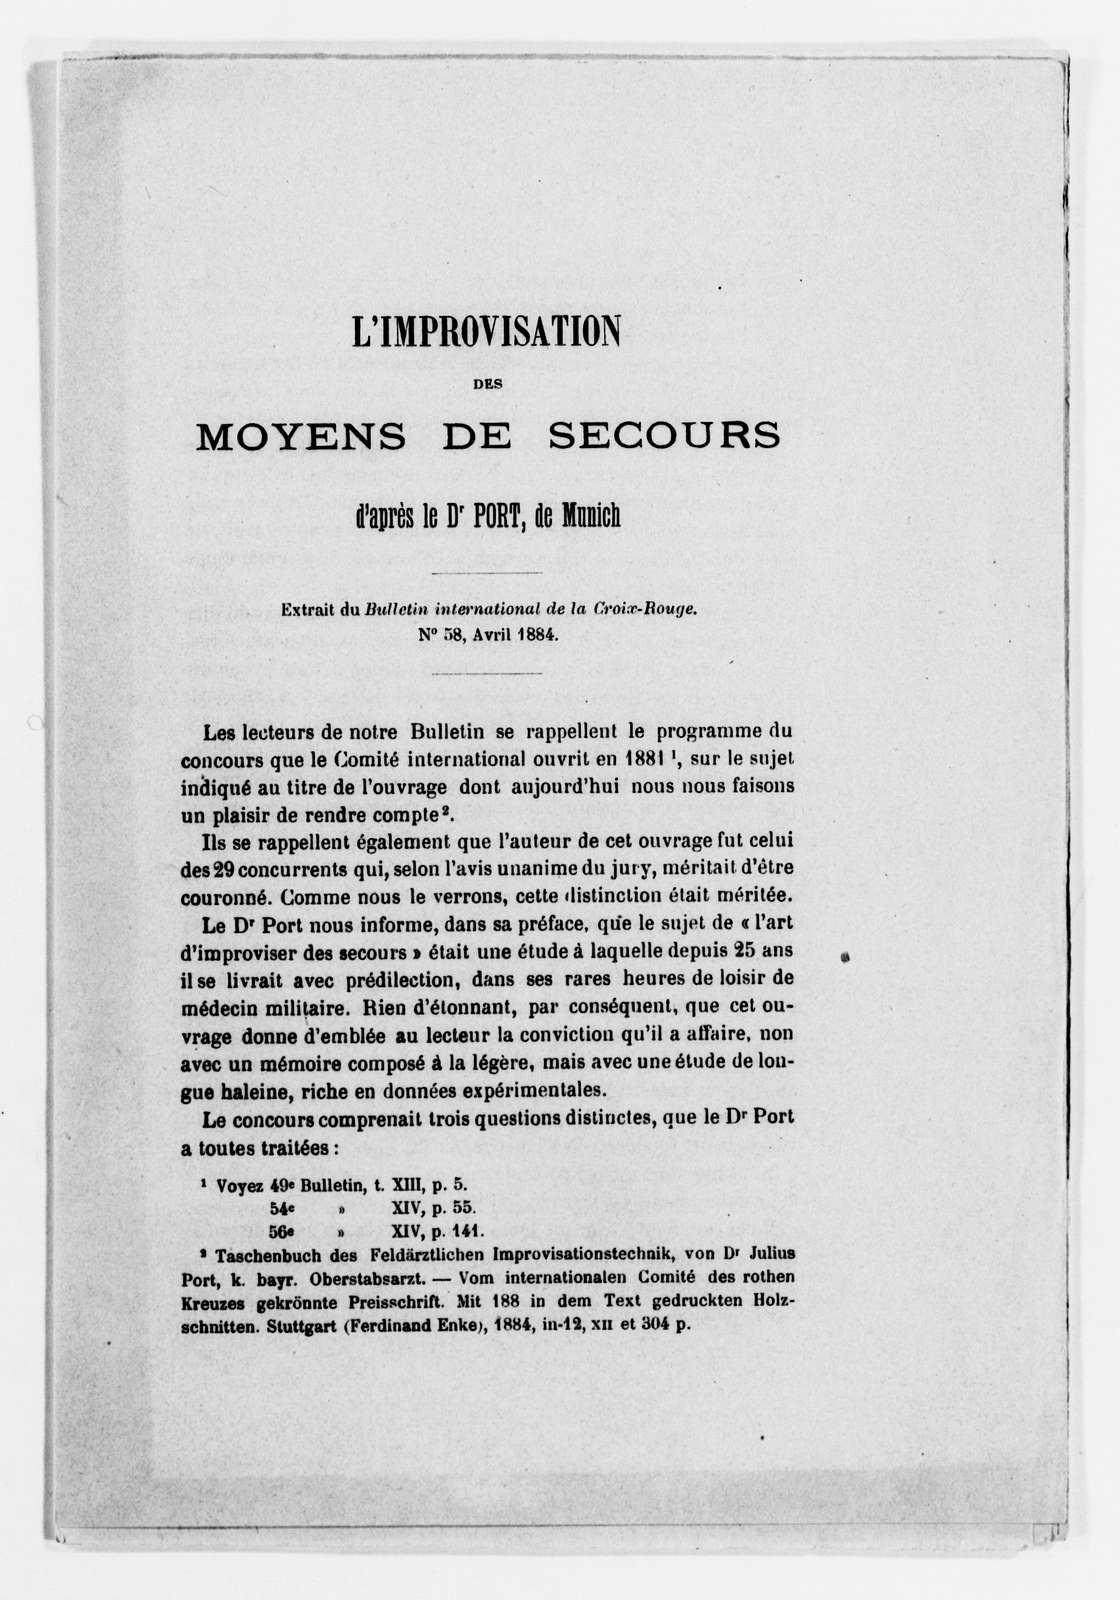 Clara Barton Papers: Red Cross File, 1863-1957; International Committee of the Red Cross, 1863-1919; Conferences; Third International Red Cross Conference, Geneva, Switzerland, Sept. 1884; Miscellany, 1884-1885